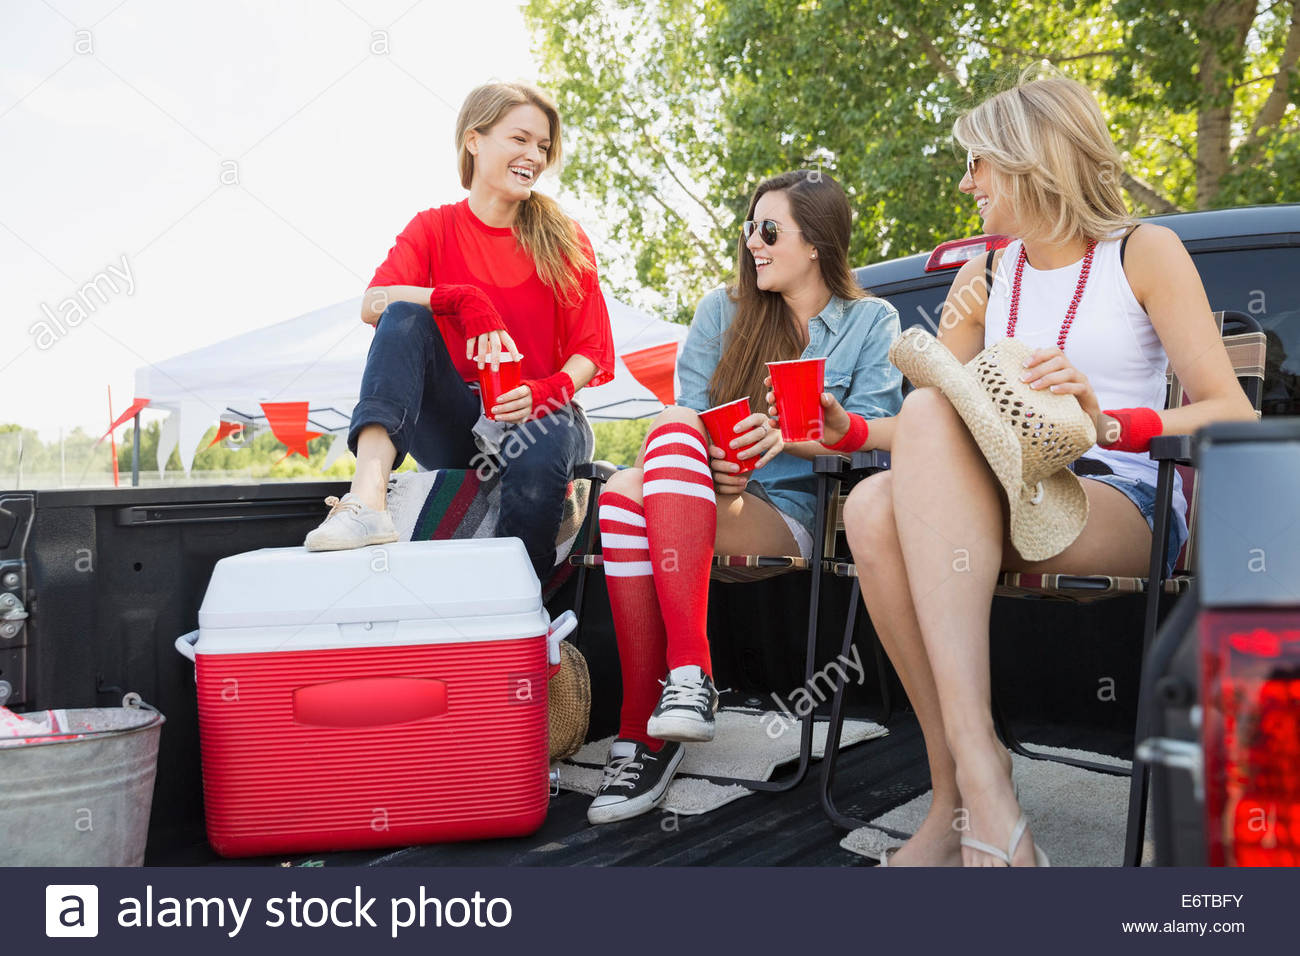 Women relaxing at tailgate barbecue in field - Stock Image